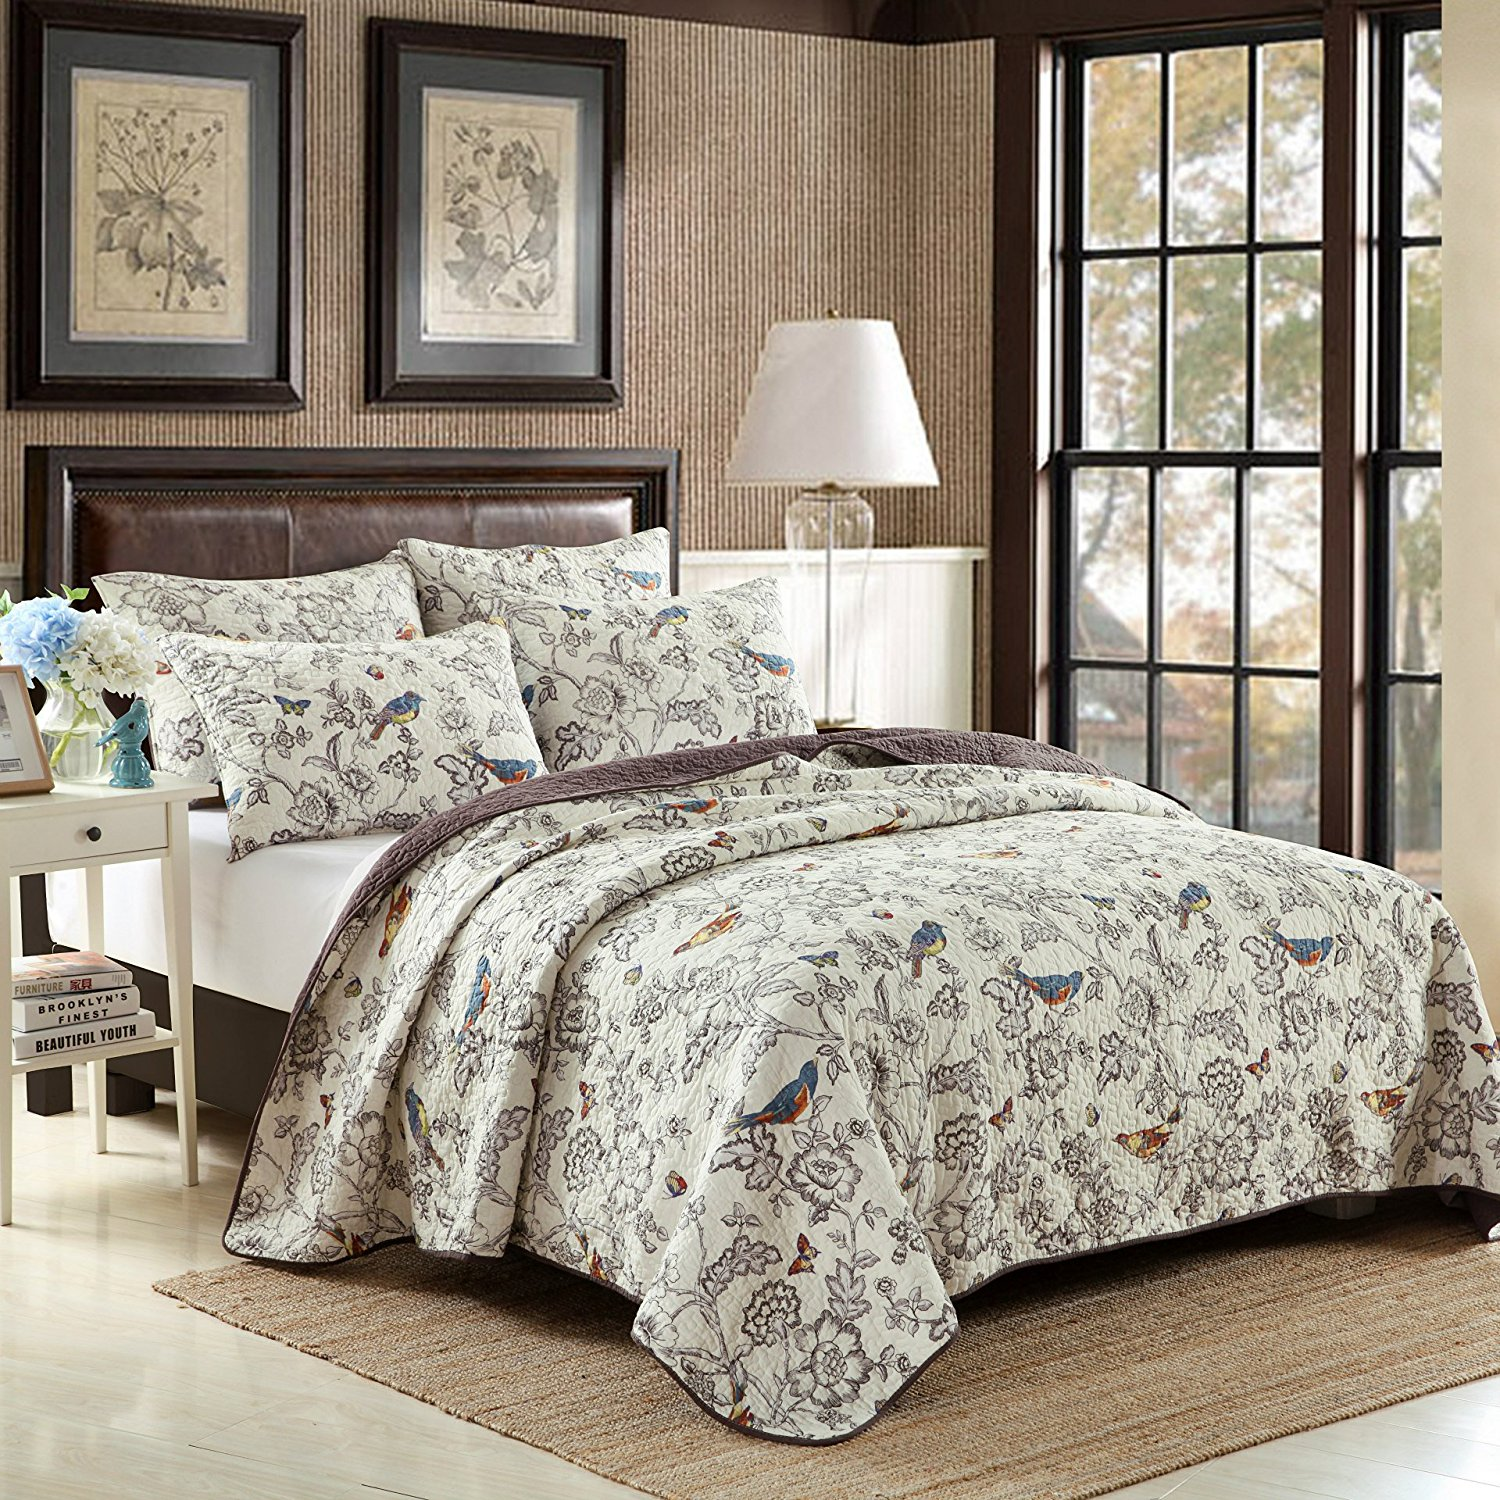 comforter obasan summer fall main shop banff